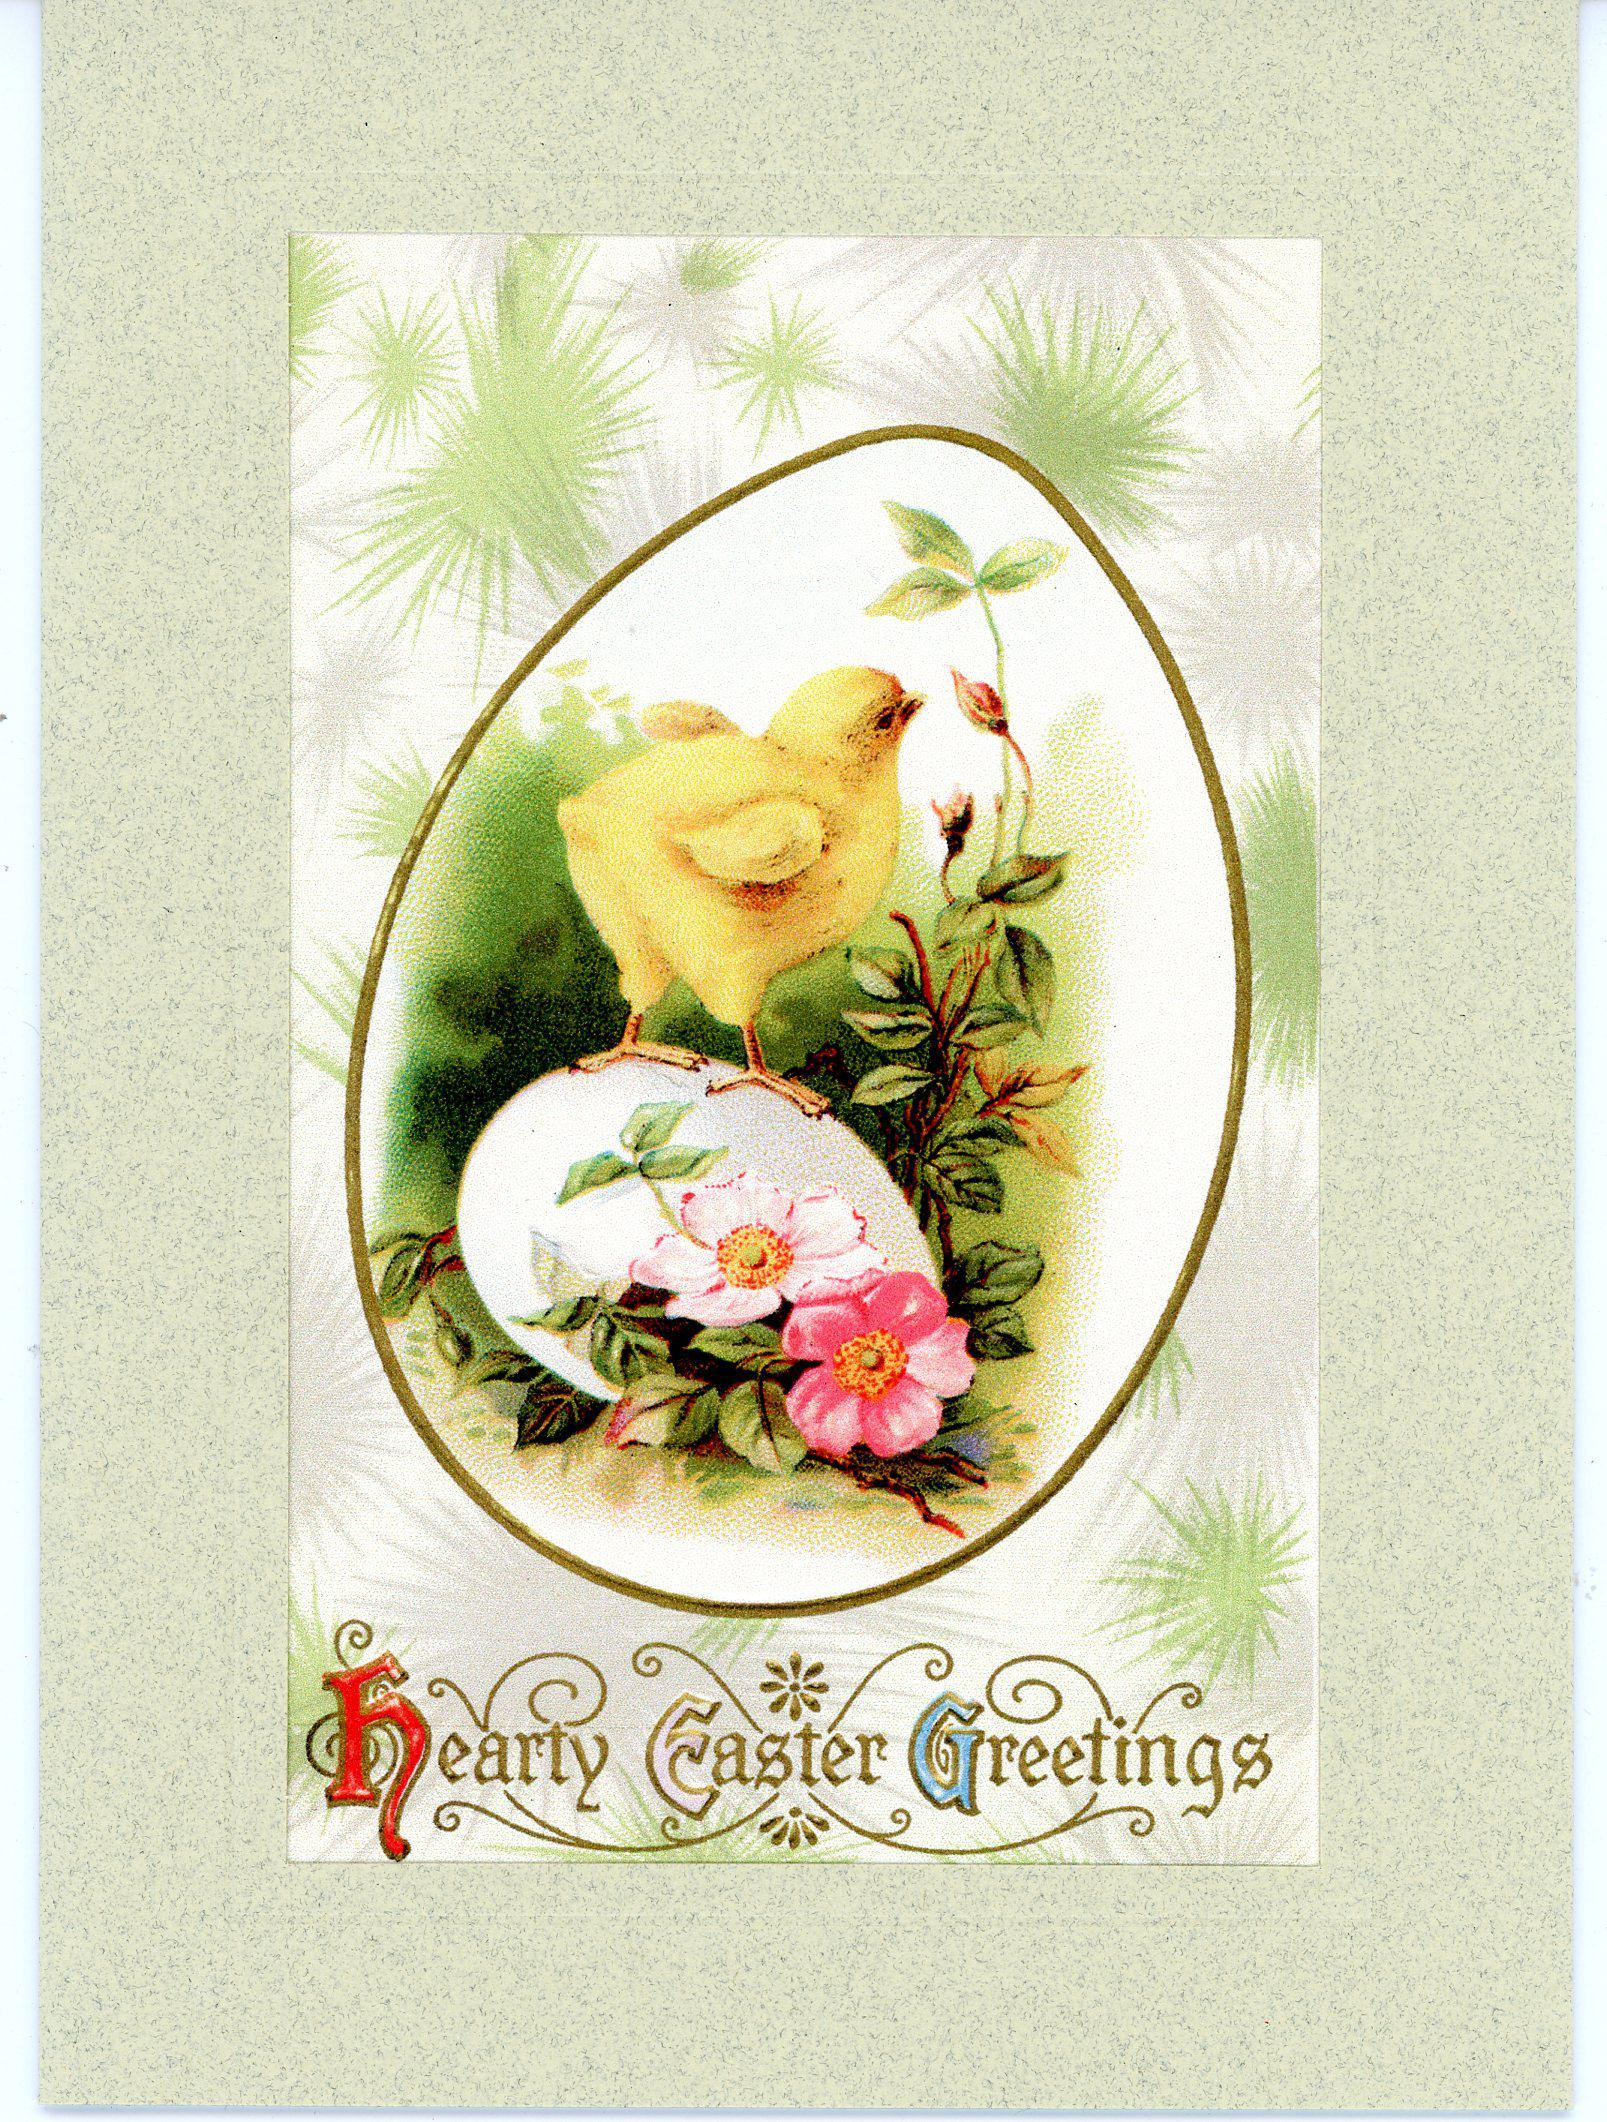 Hearty Easter Greetings-Greetings from the Past-Plymouth Cards